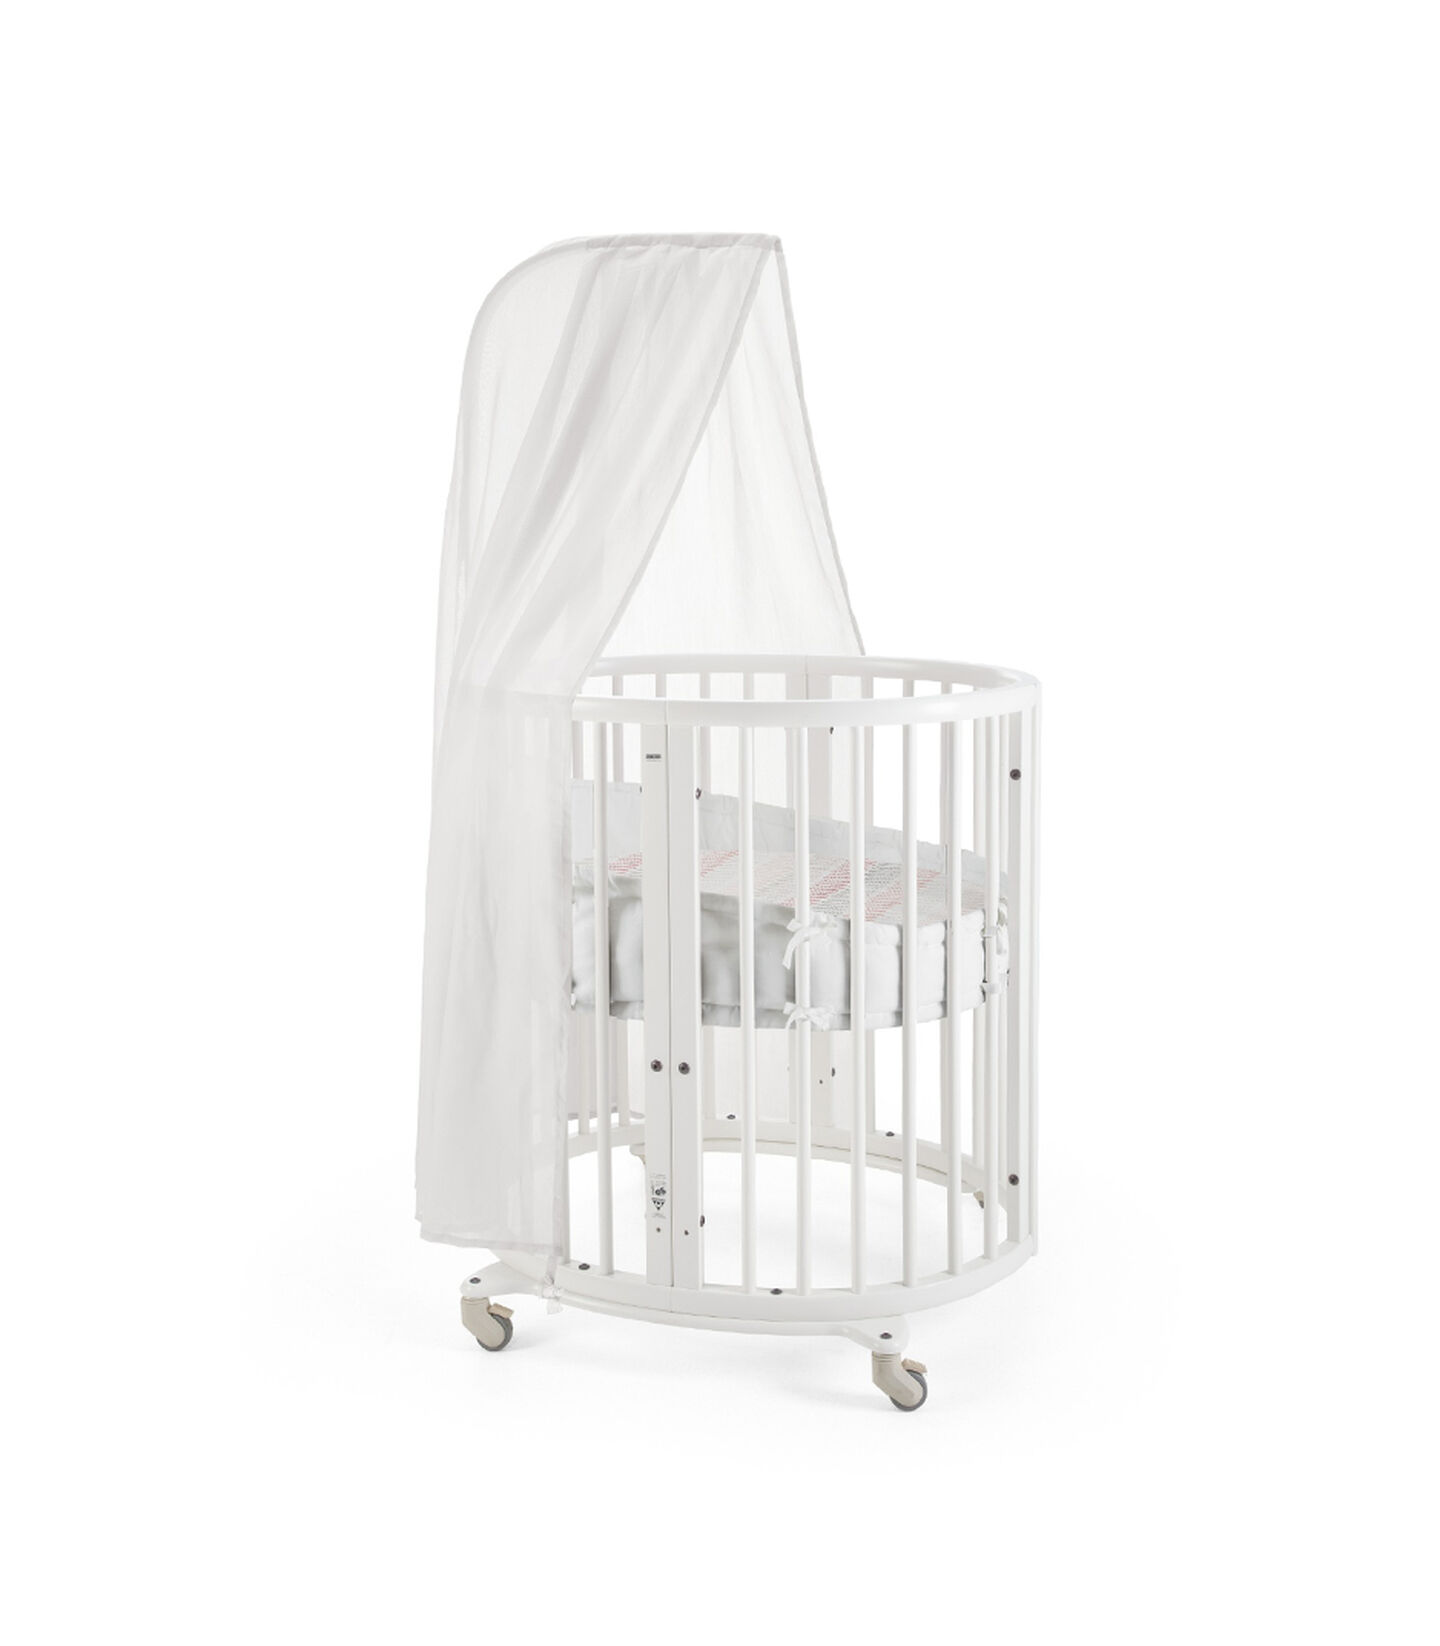 Stokke® Sleepi™ Sluier White, White, mainview view 2